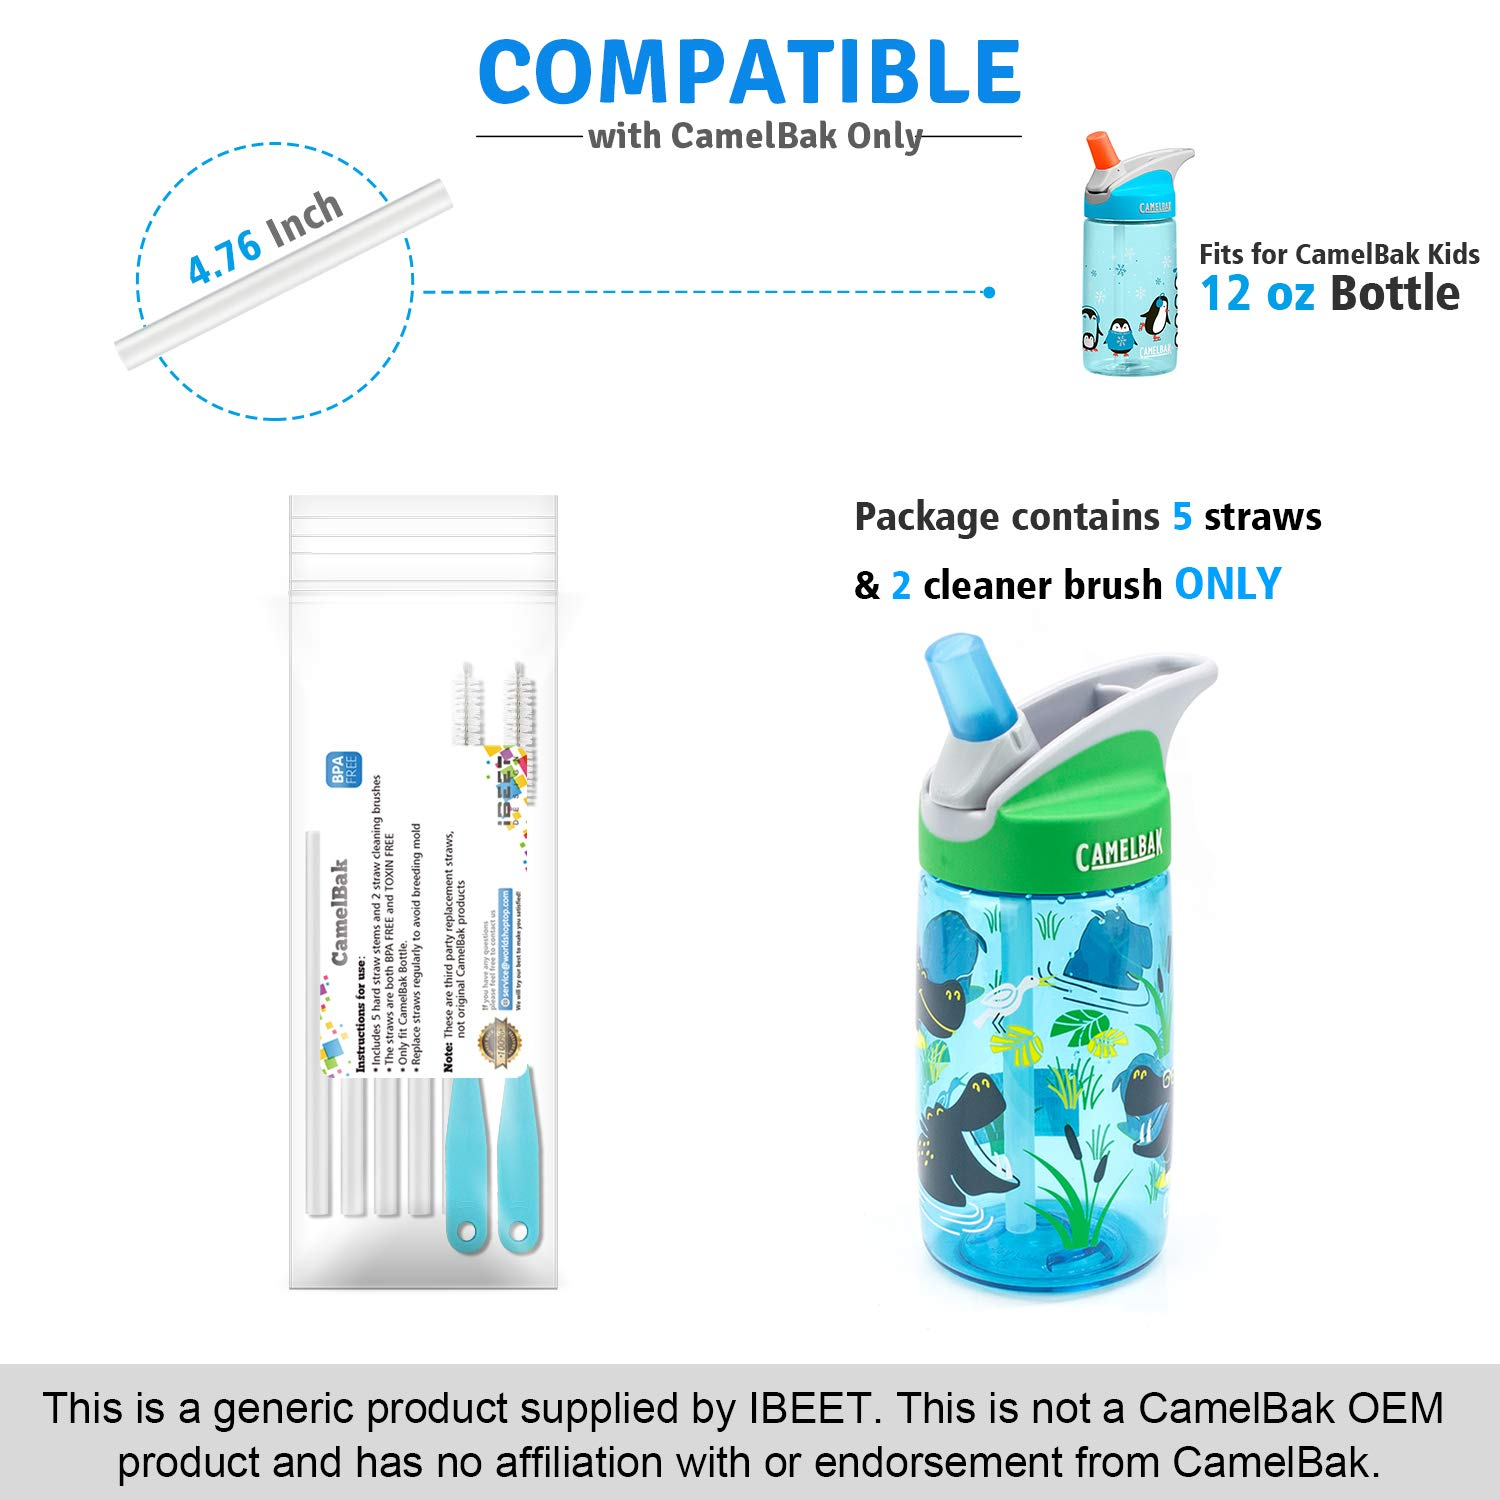 ae71acb14f Amazon.com: IBEET Replacement Straws Set for CamelBak eddy Kids 12oz Water  Bottle, Accessory 5 Drinking Straws and 2 Straw Cleaning Brushes Fit for  CamelBak ...